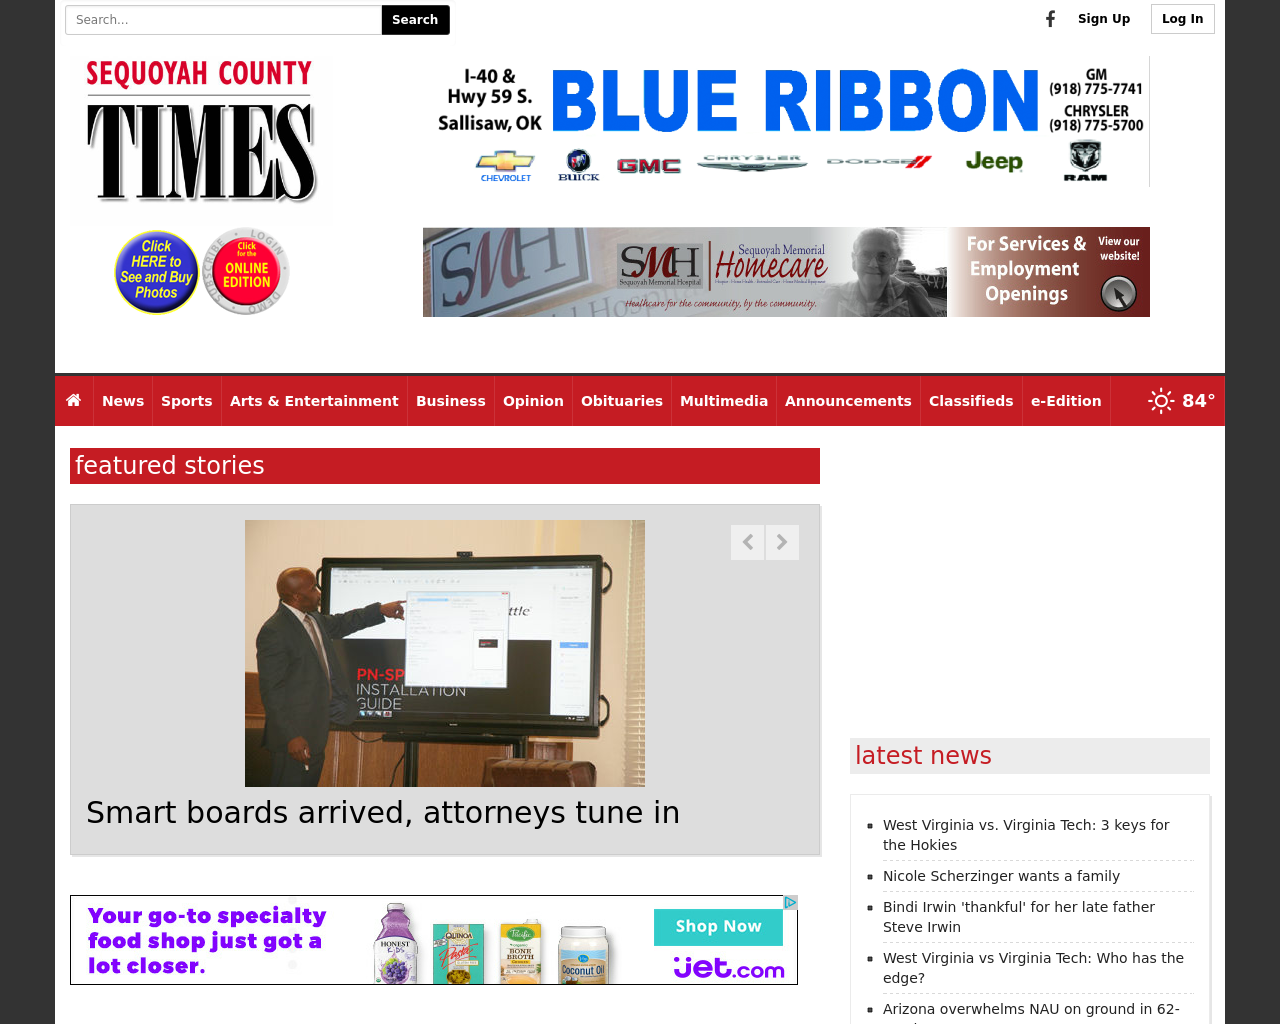 Sequoyah-County-Times-Advertising-Reviews-Pricing